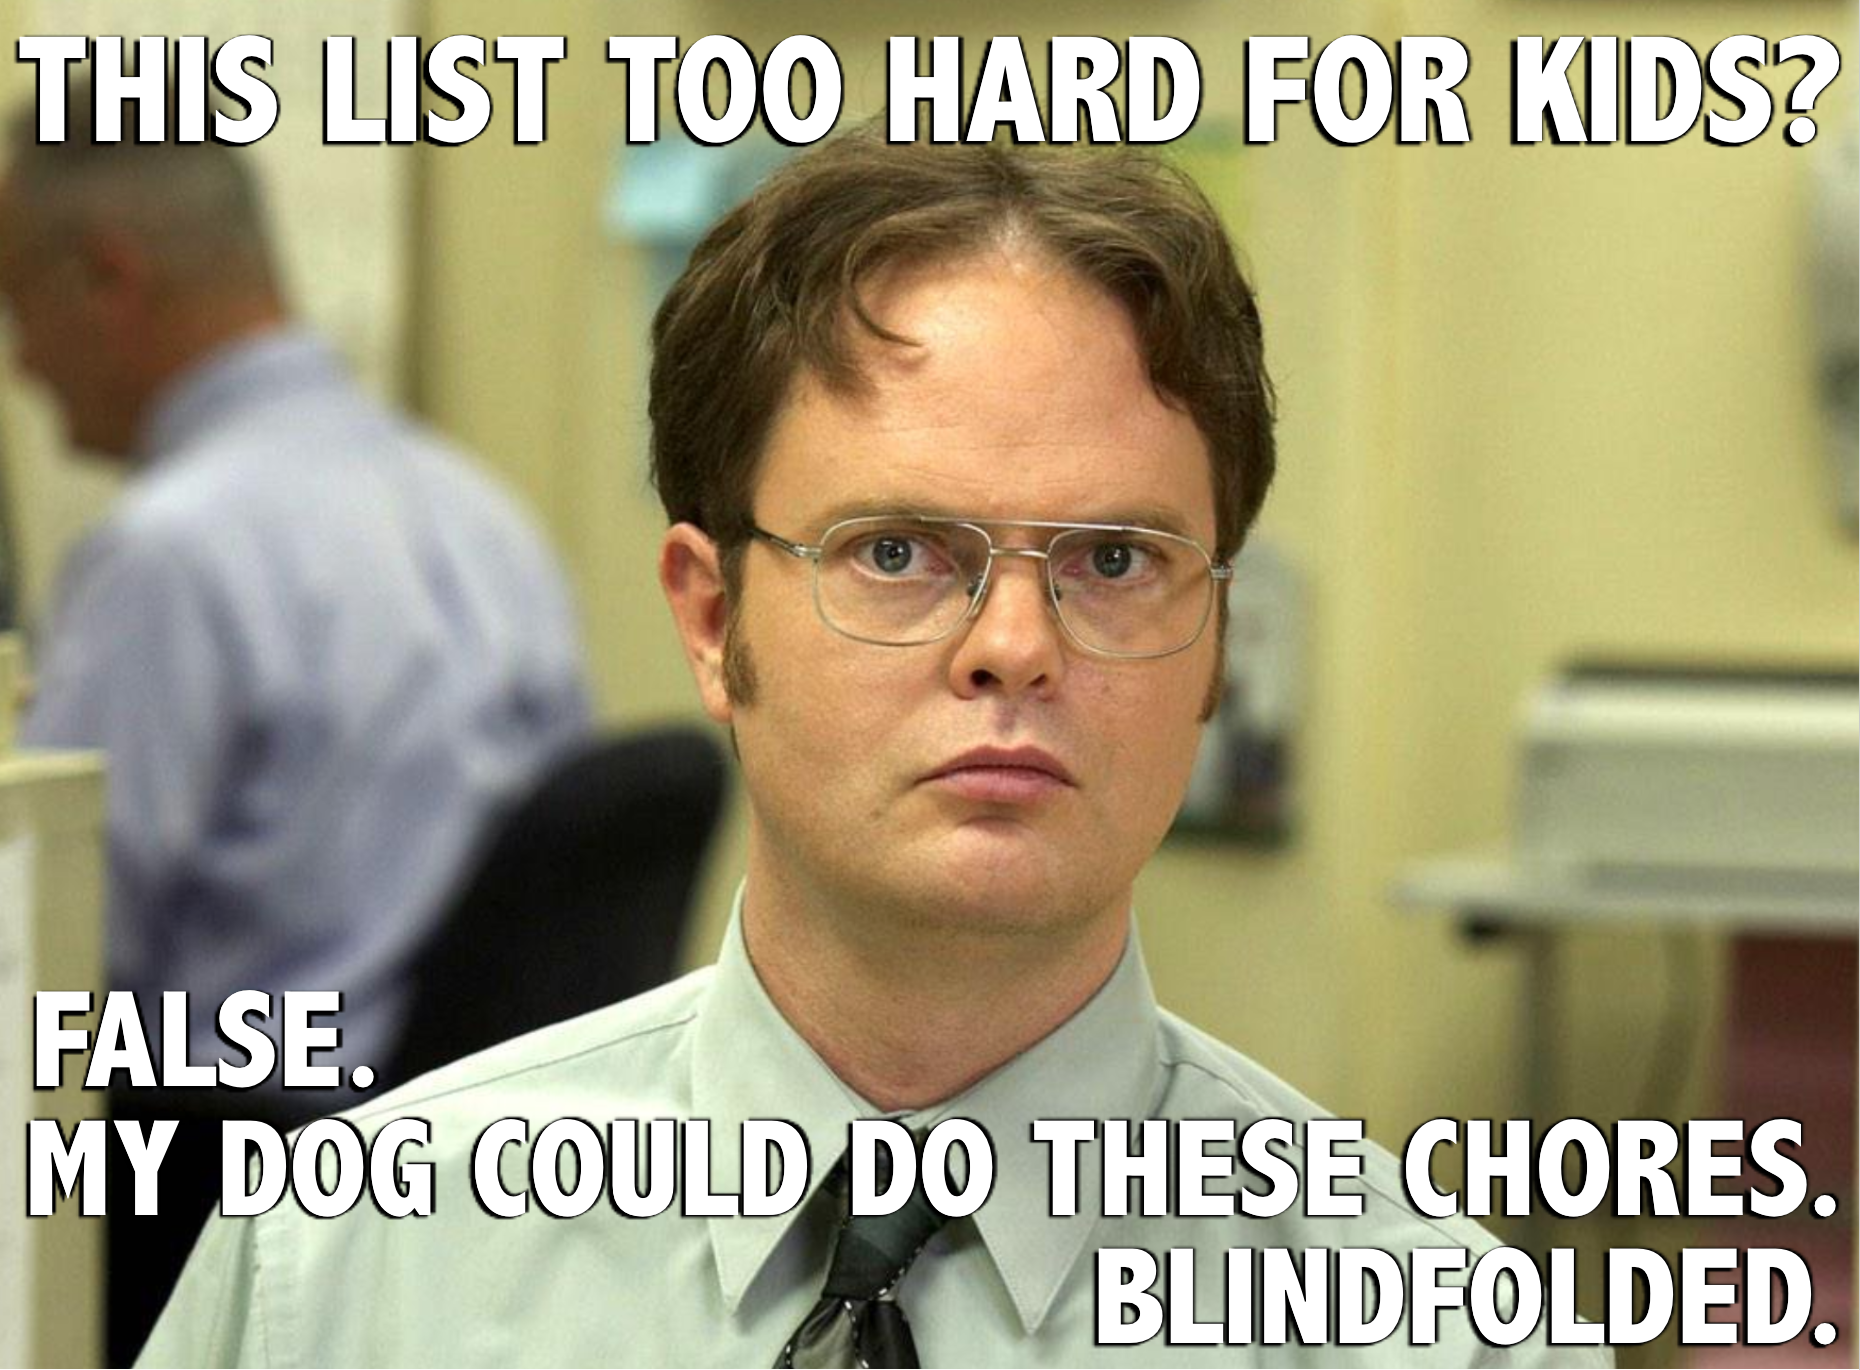 Dwight Schrute on Children's Chores